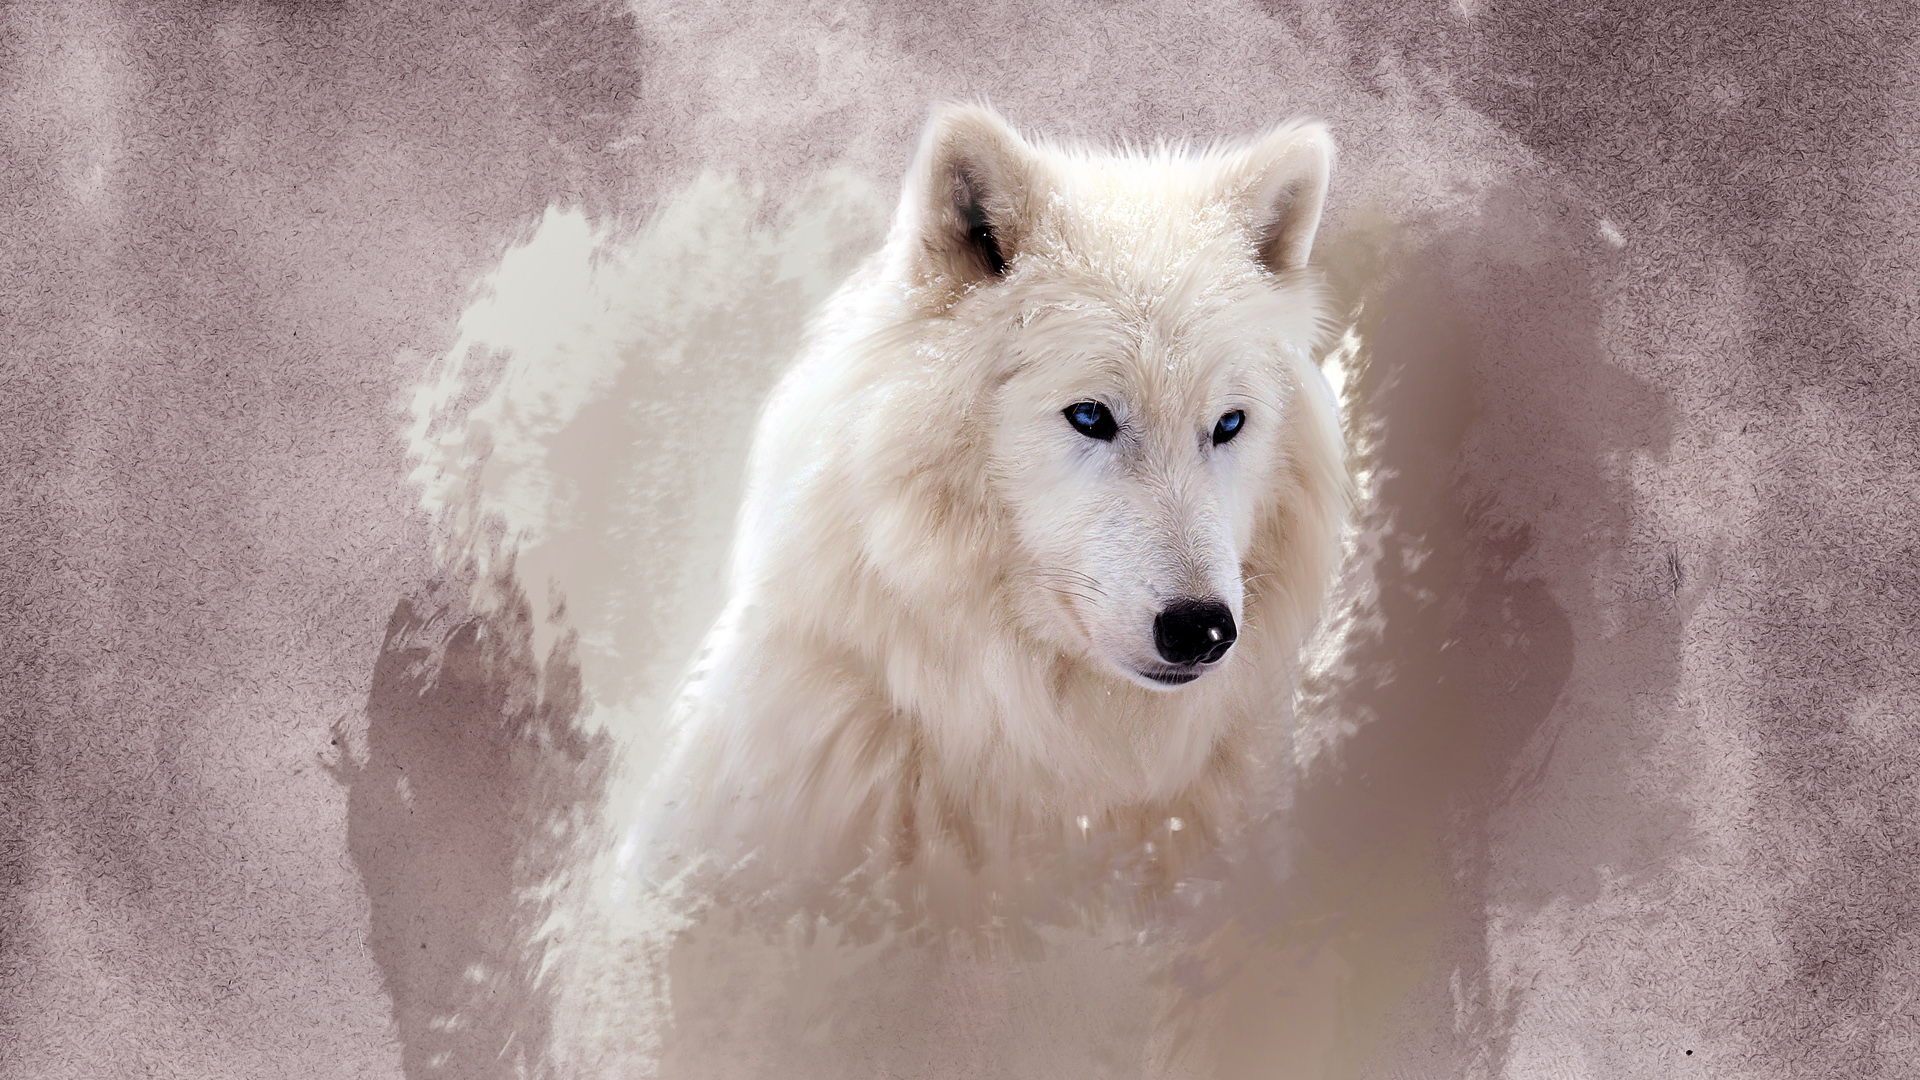 The Wolf Wallpapers HD Wallpapers 1920x1080